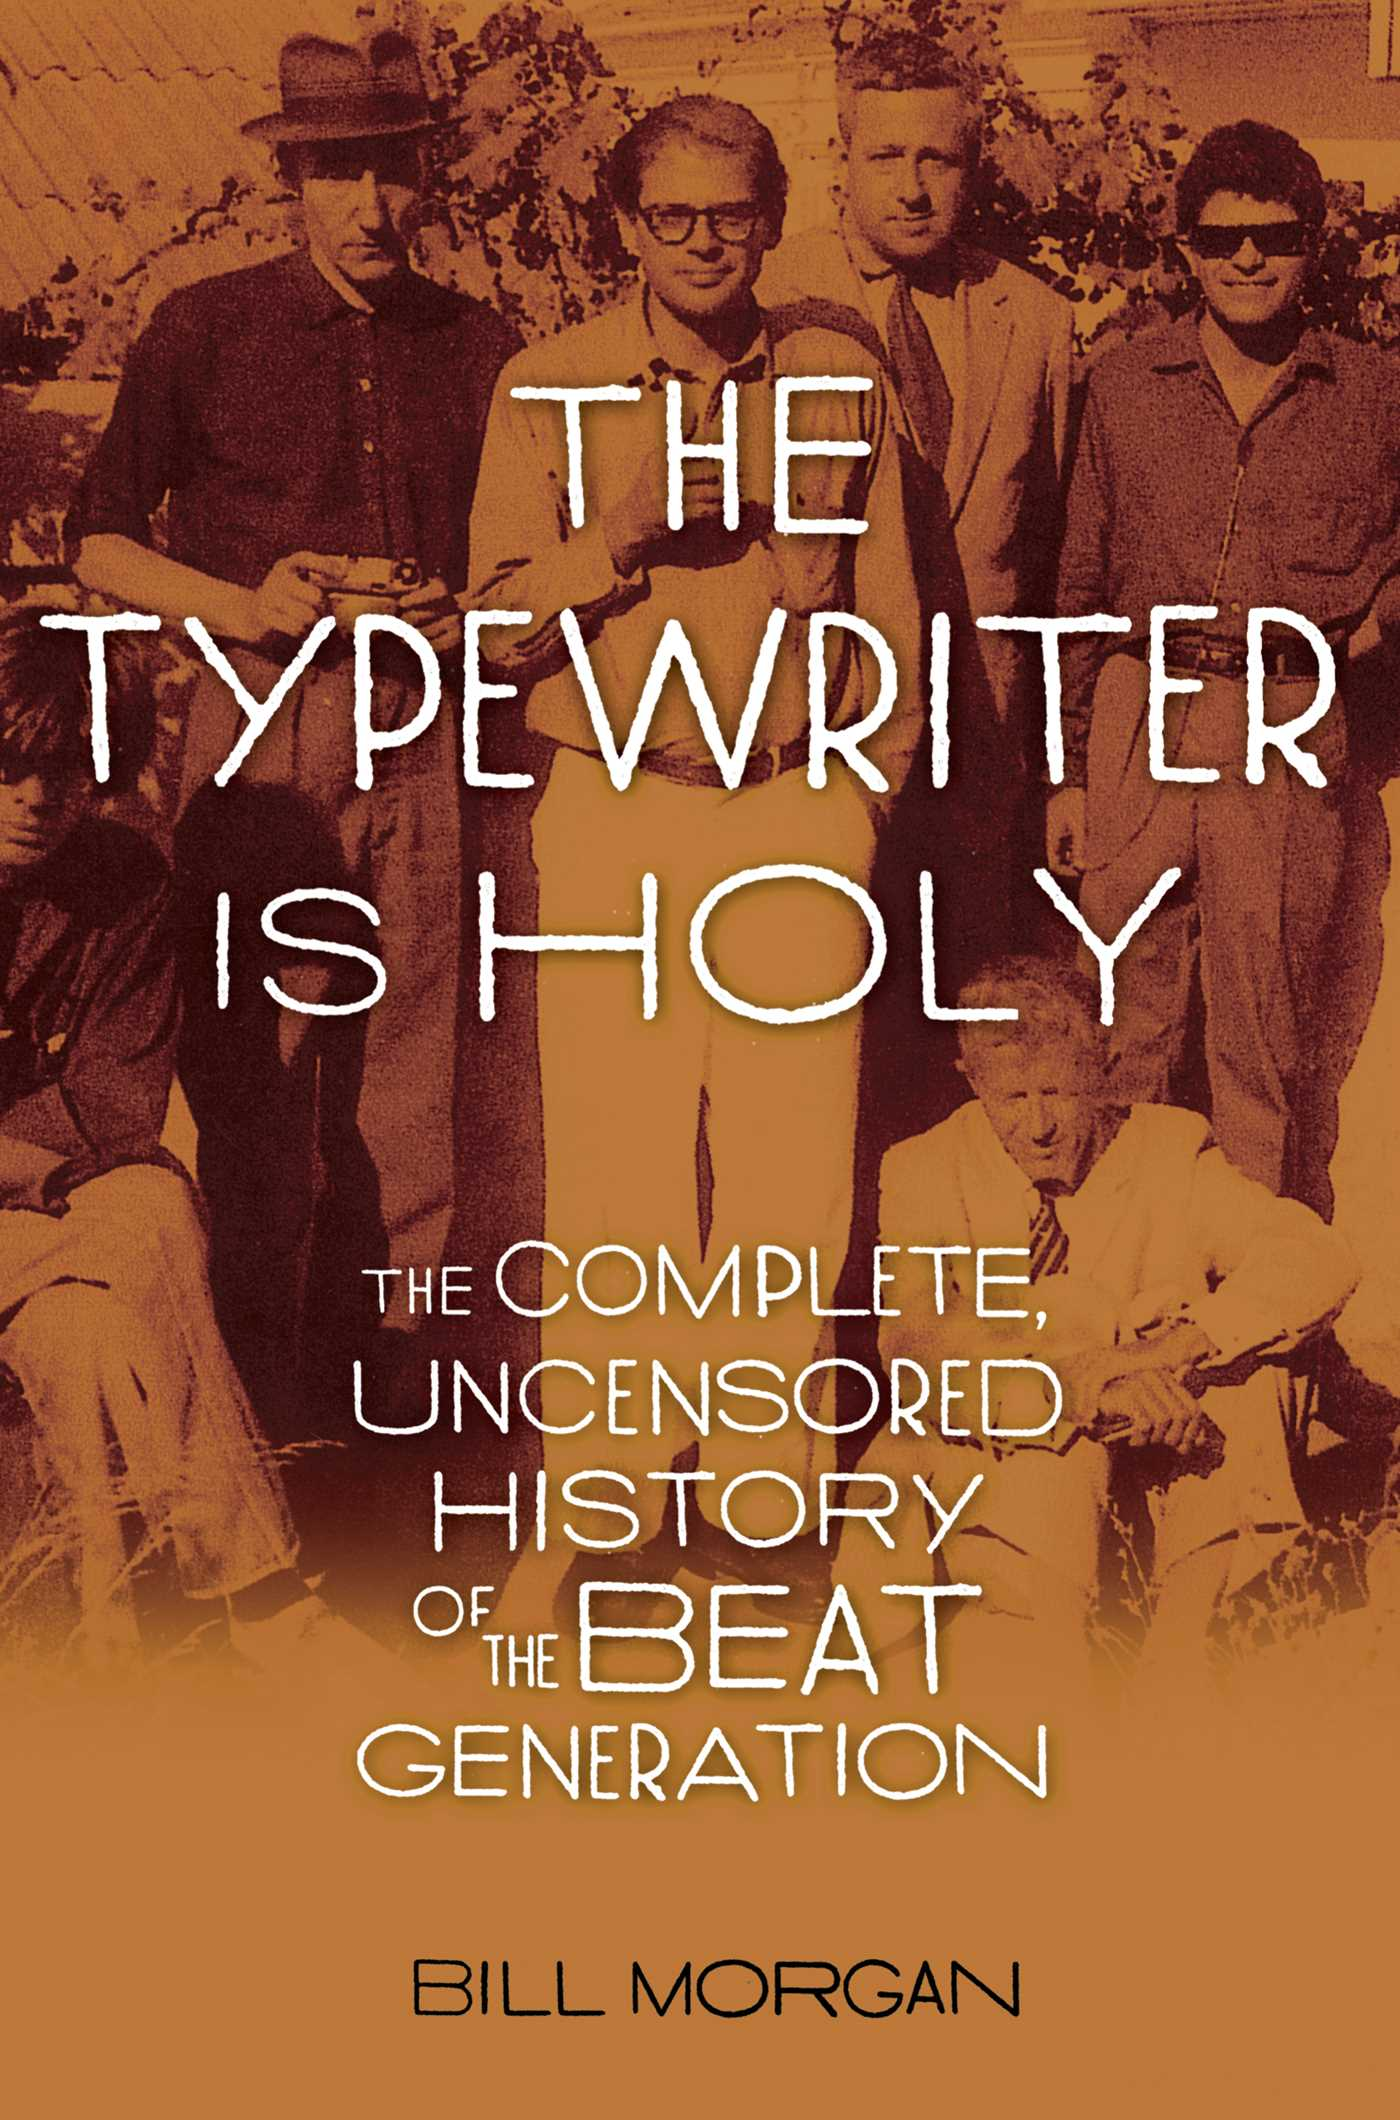 The typewriter is holy 9781416597209 hr